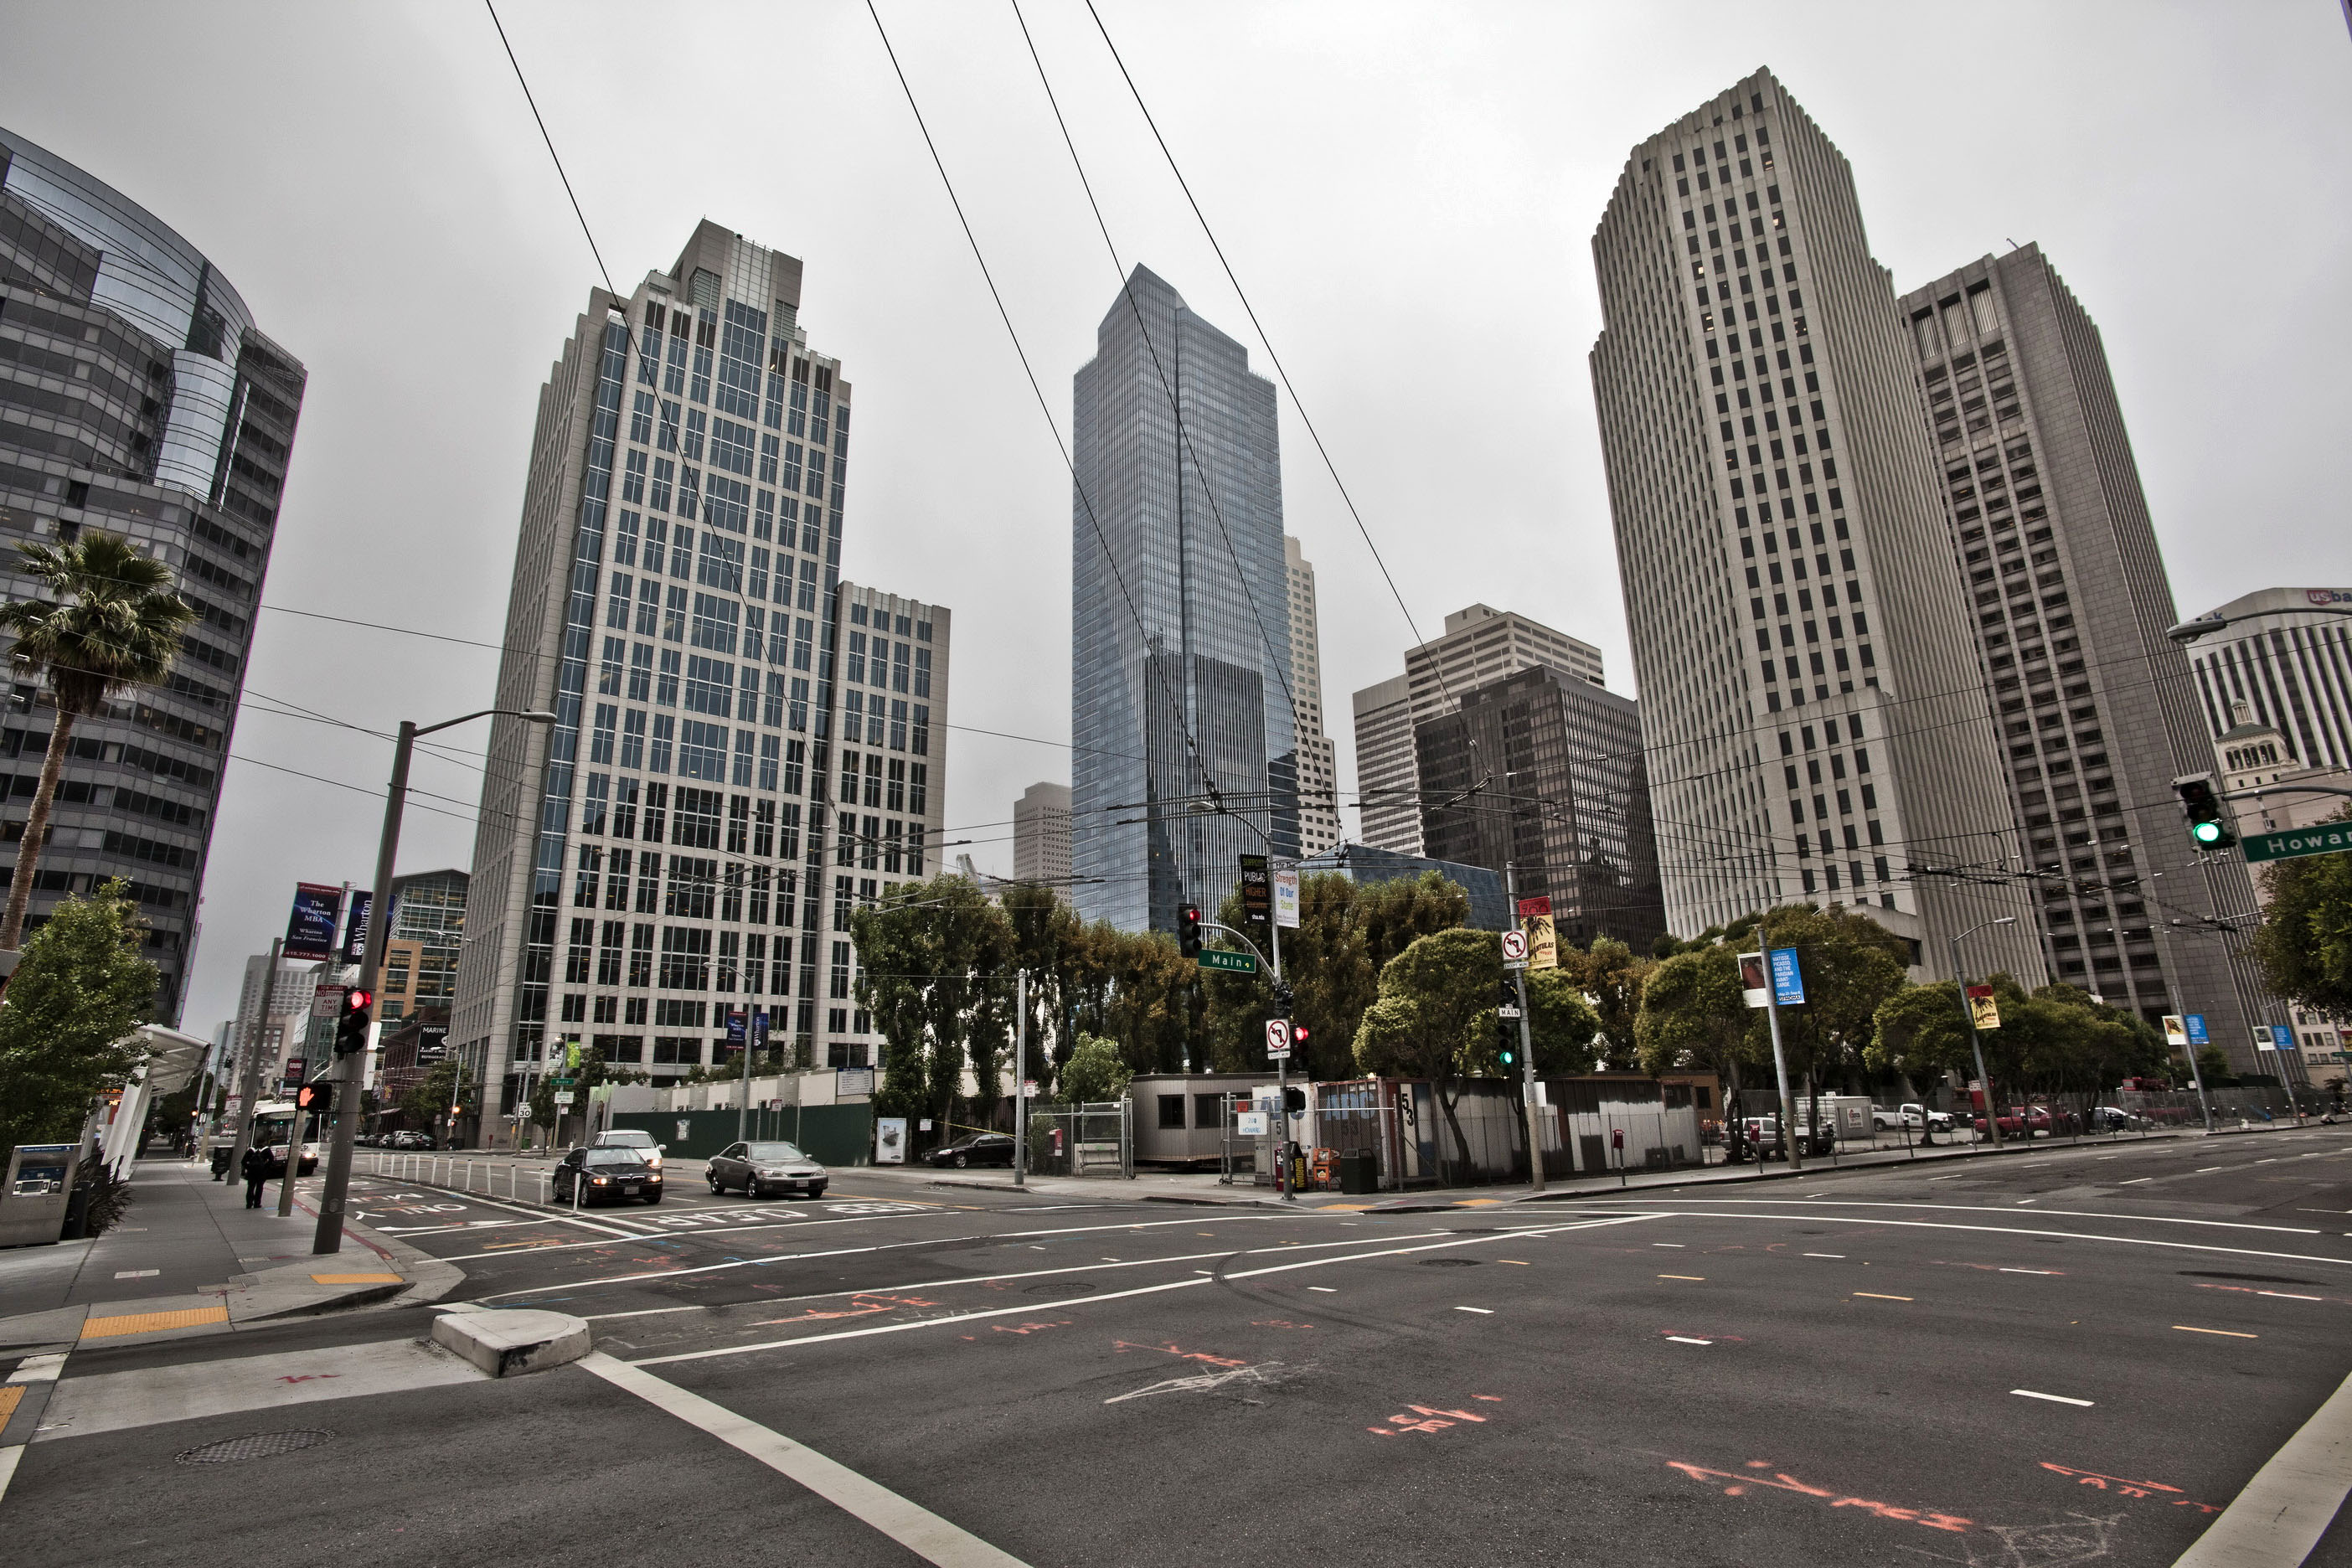 Architecture cnr Howard and Main St San Francisco CA July 2011 02